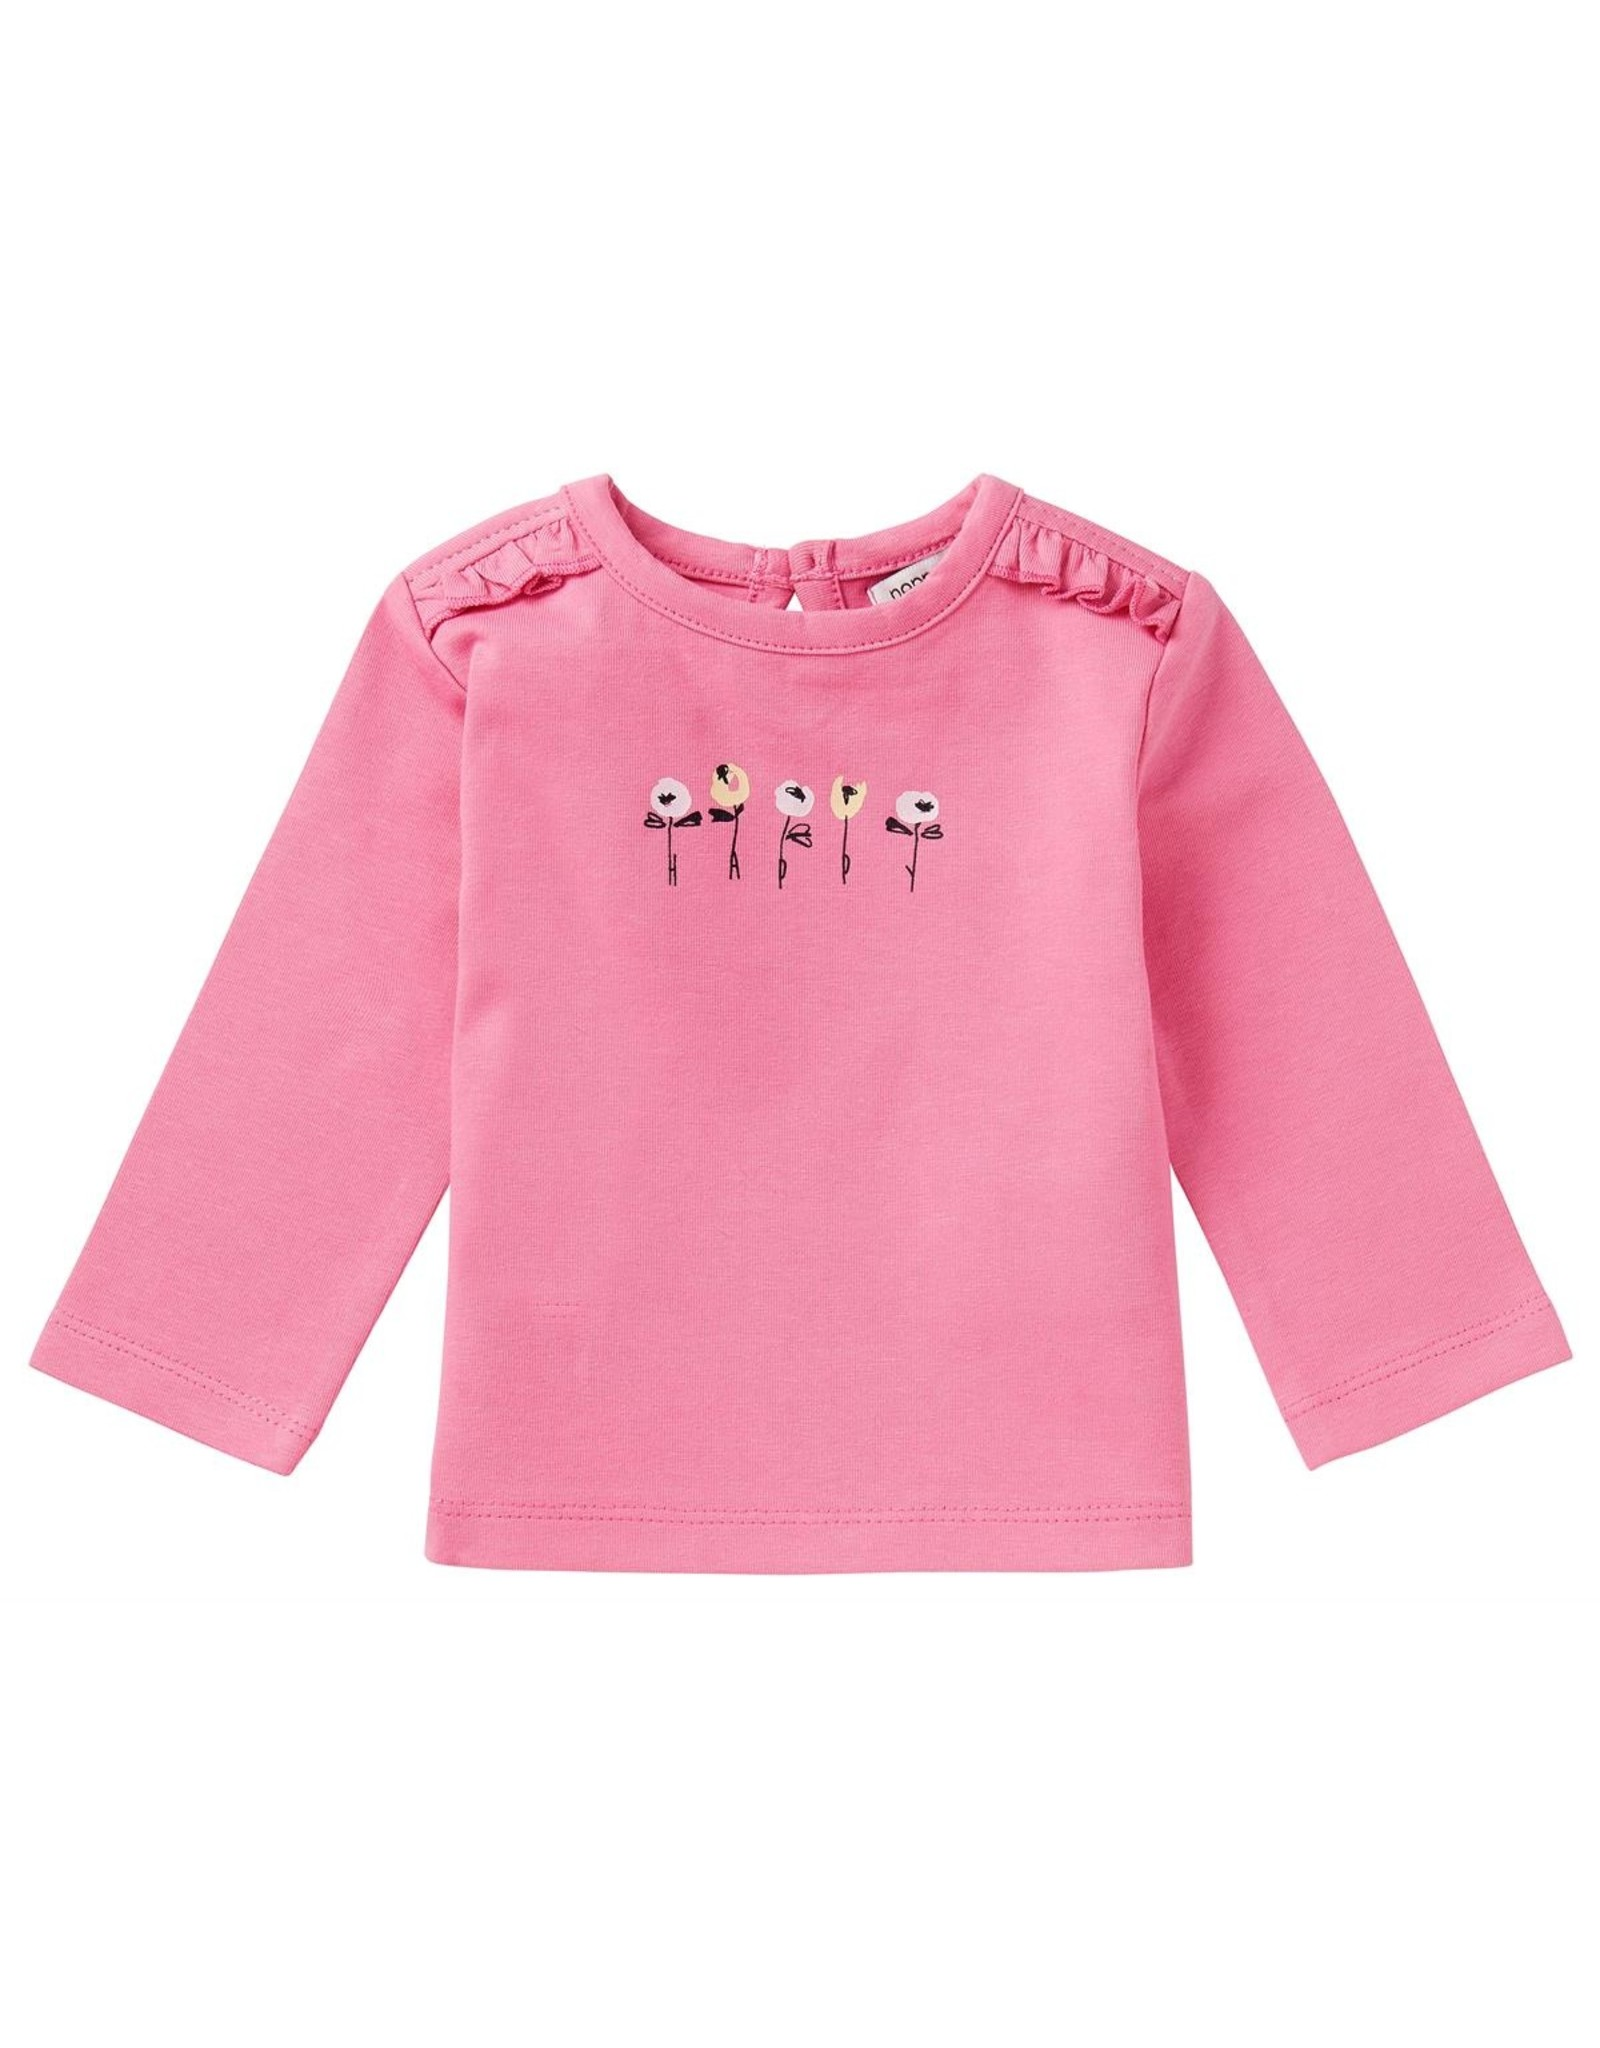 Noppies G Regular T-shirt ls Carter, Sachet Pink